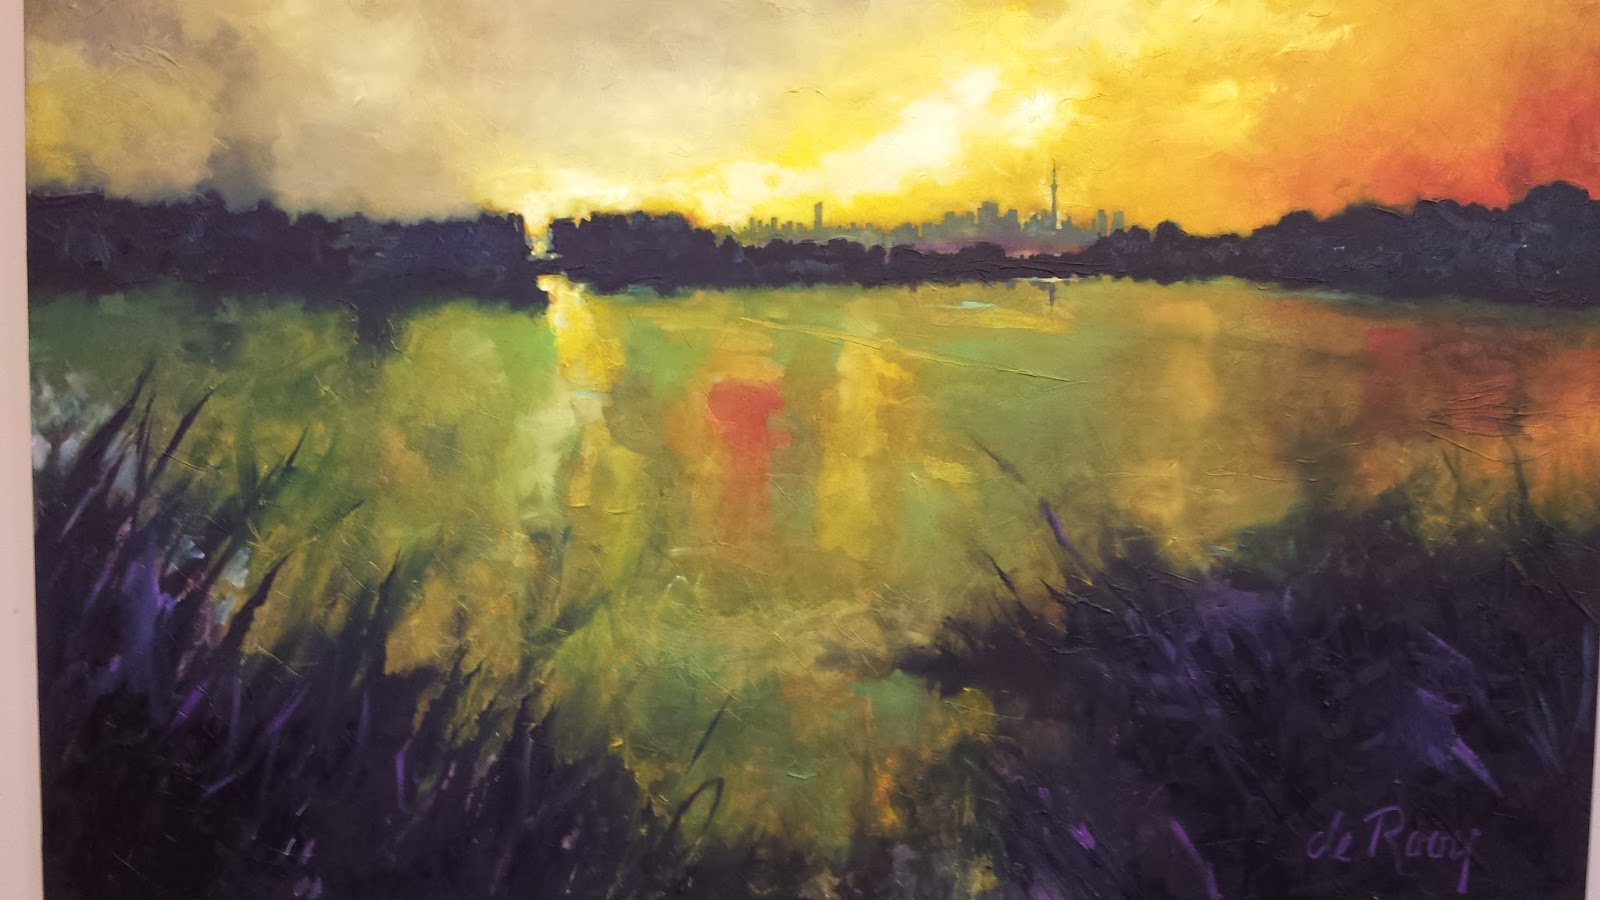 LOCAL ARTIST ADRIAN DeROOYS AMAZING PAINTINGS OF SAM SMITH PARK